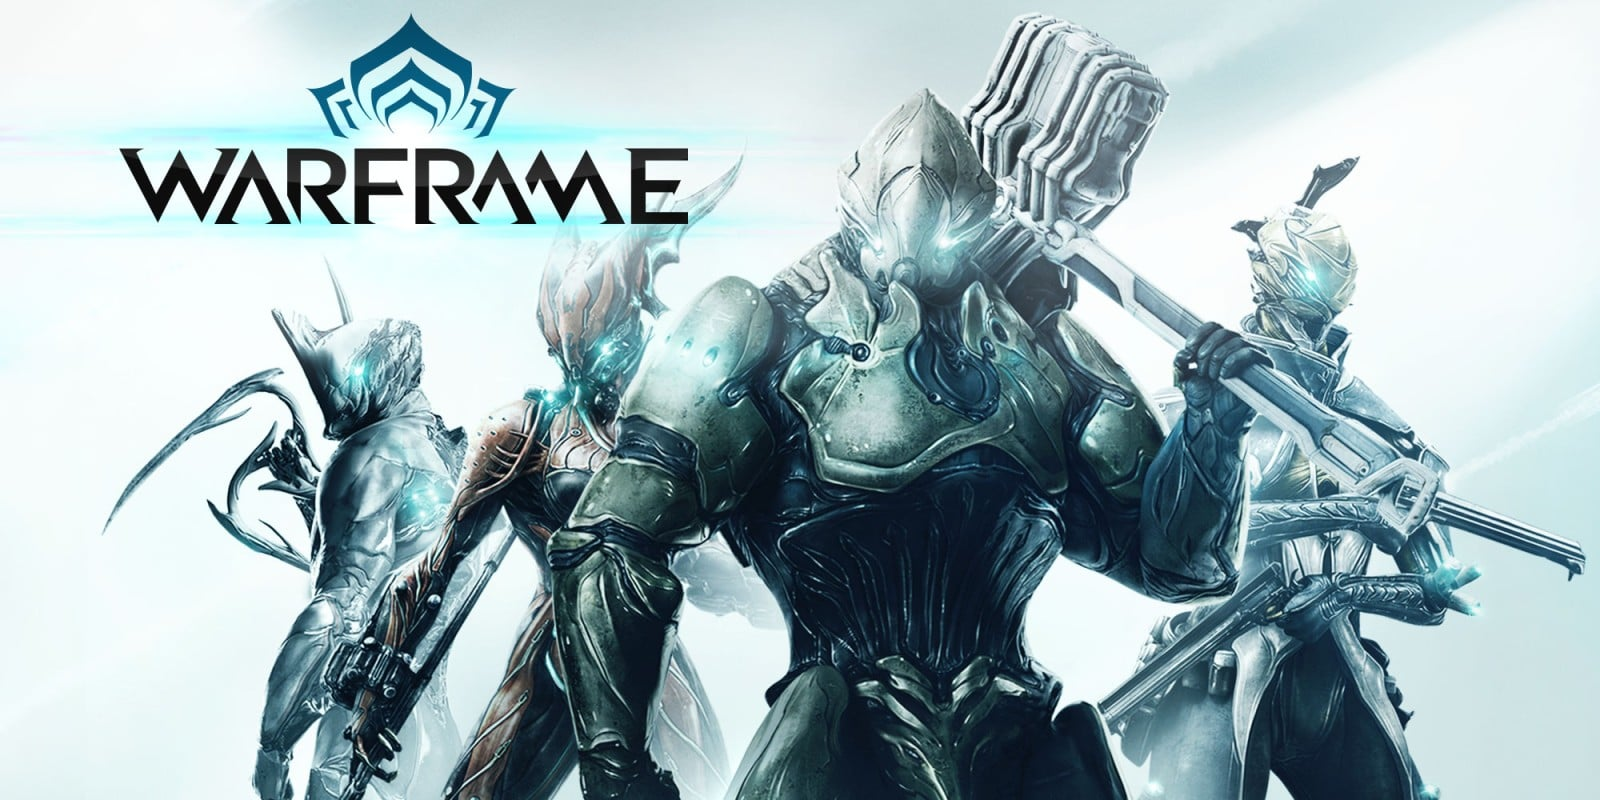 Warframe Xbox One Version Full Game Free Download 2019 · FrontLine